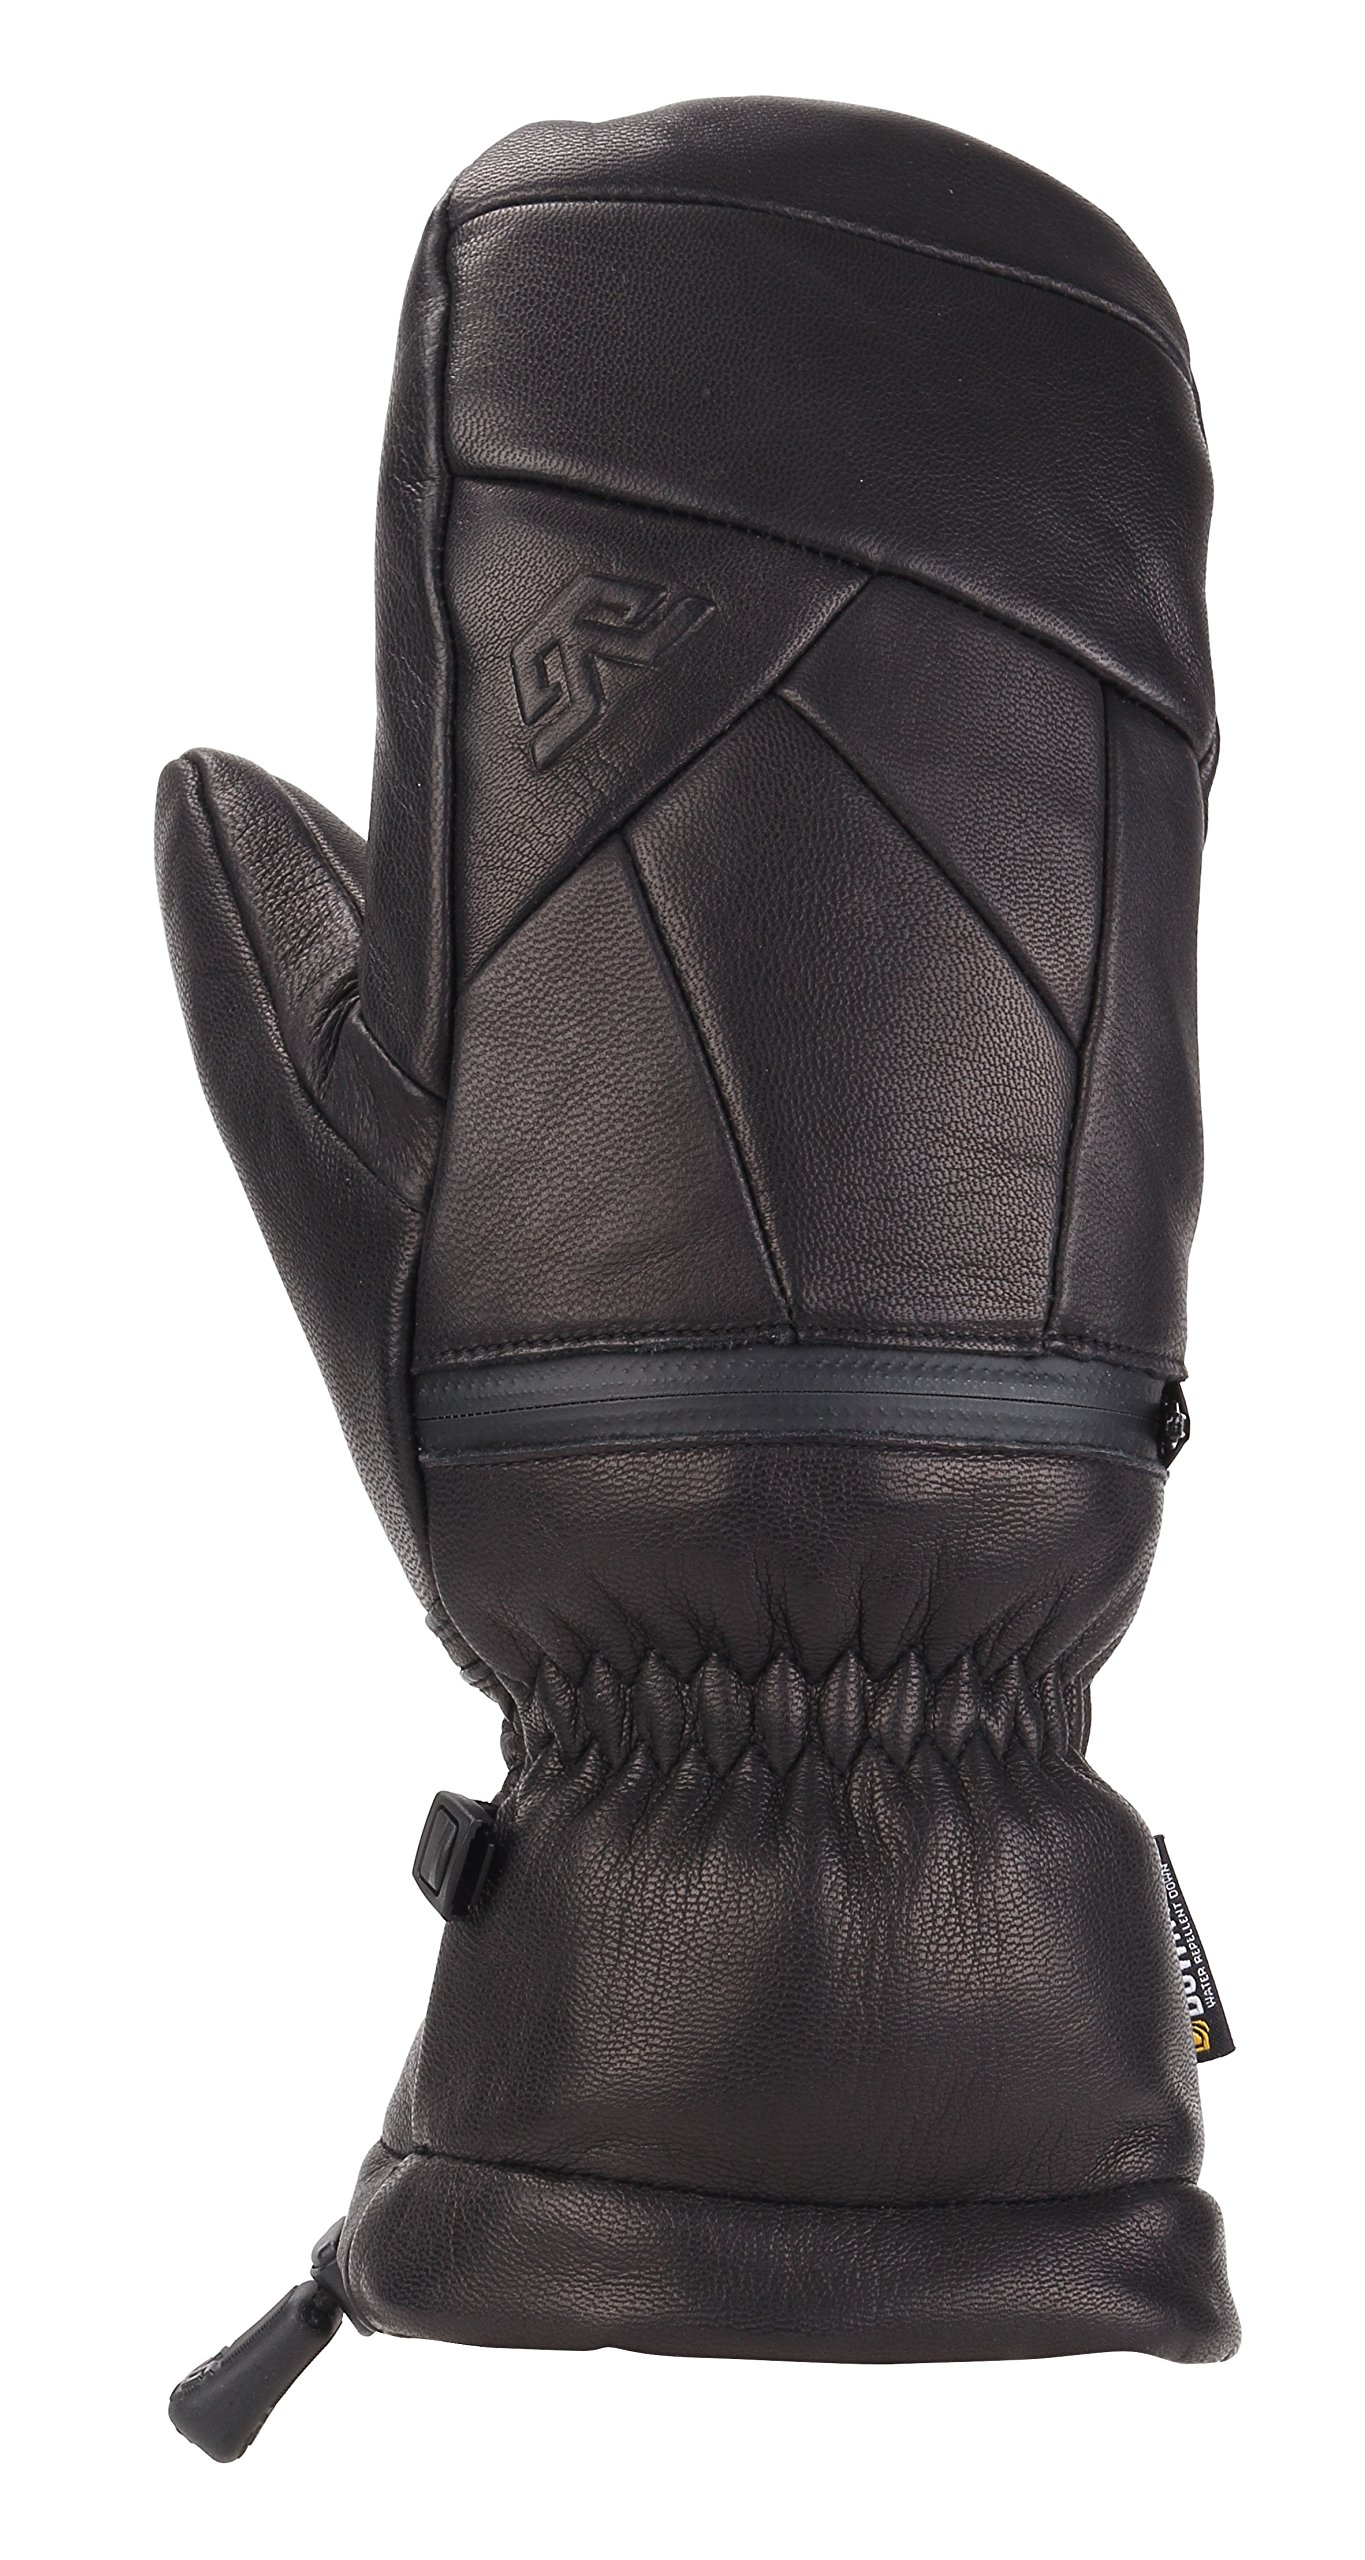 Gordini Women's Women's Leather Goose Iv Insulated Mittens, Black, Large by Gordini (Image #1)